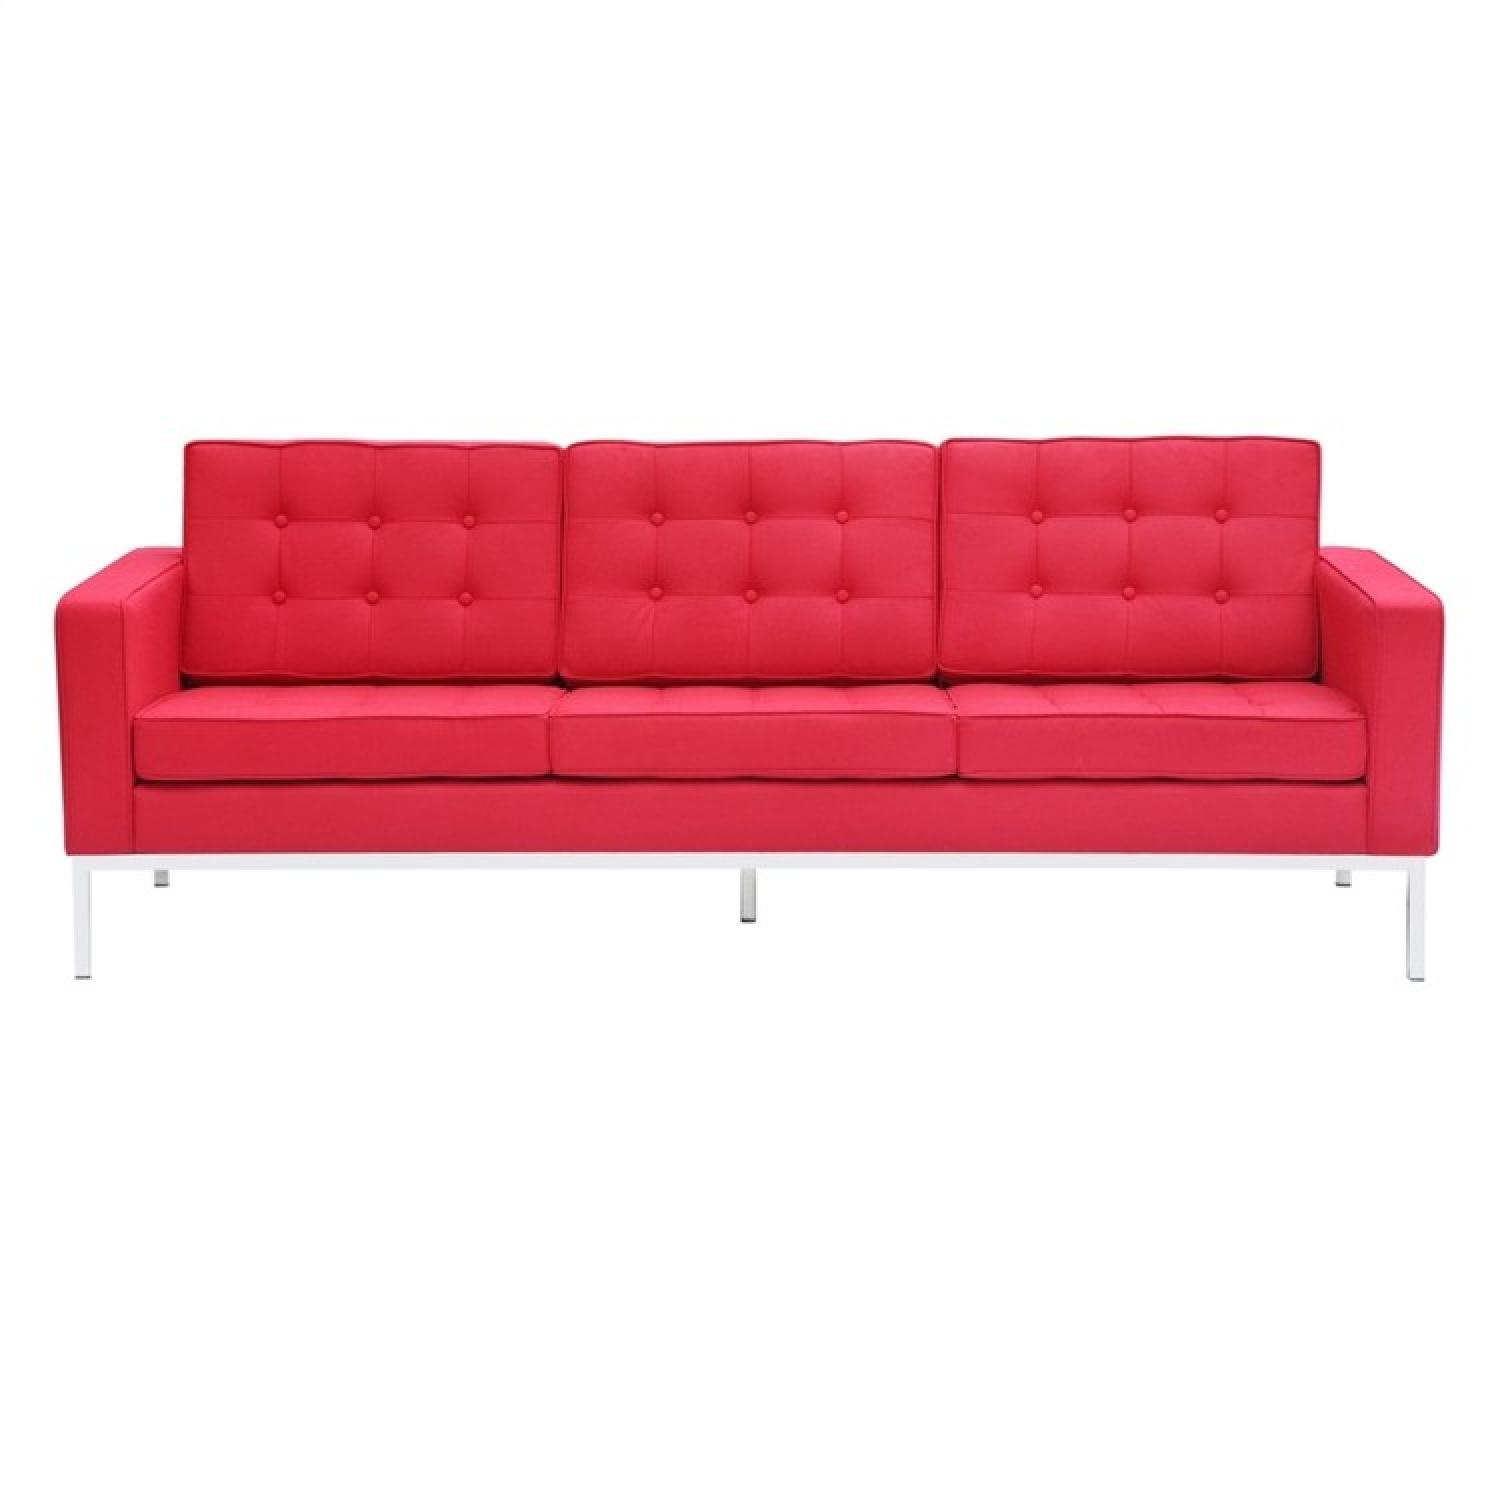 Mid Century Style Modern Button Tufted Sofa in Premium Red W